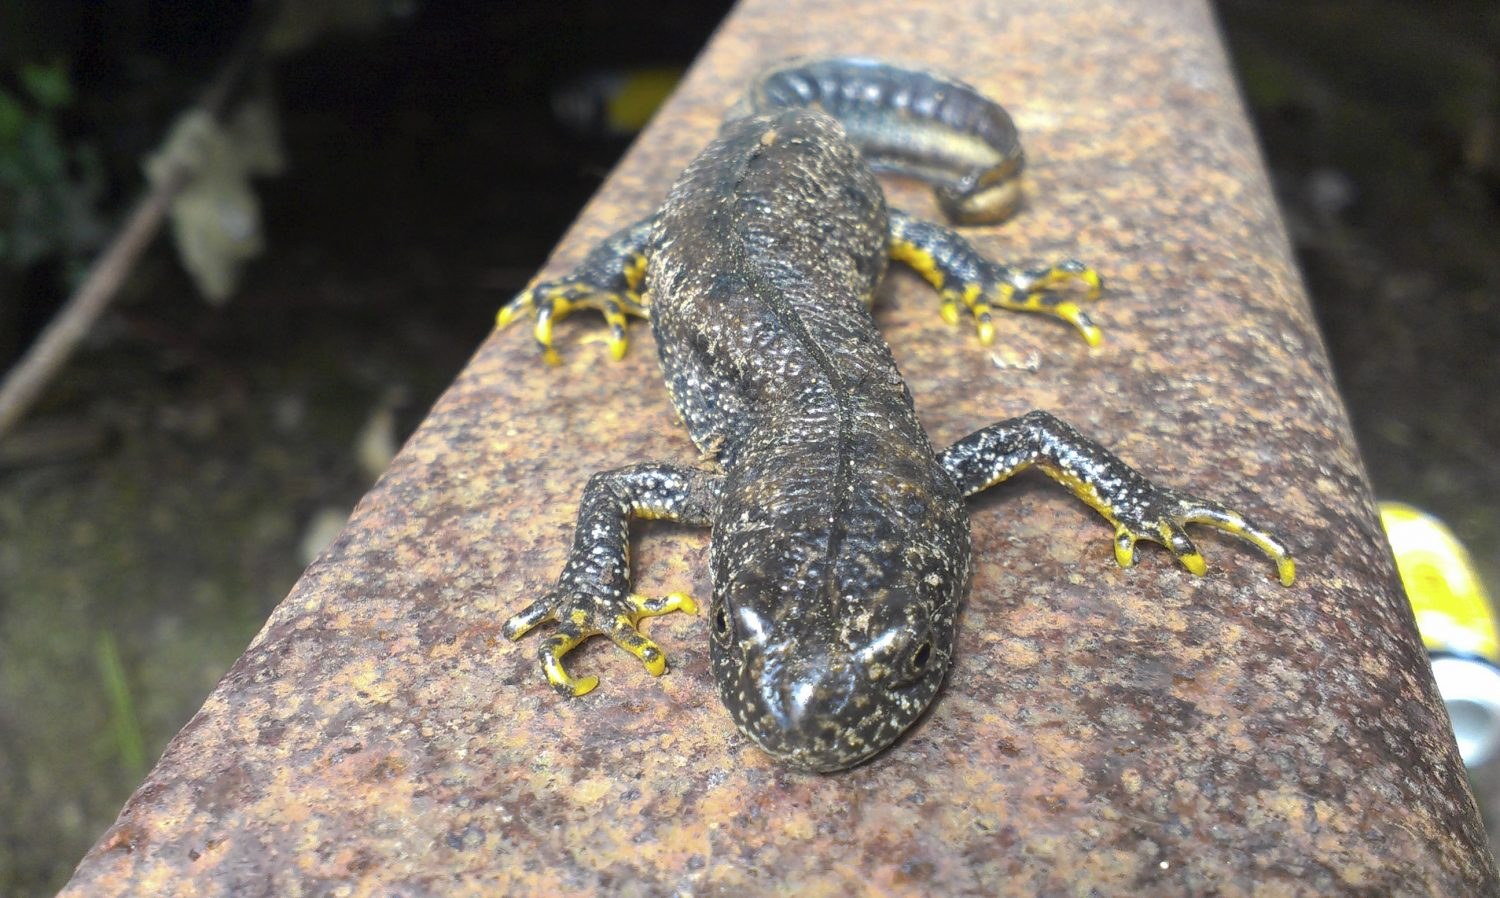 It may be a year or two before the amphibians spot a new residence